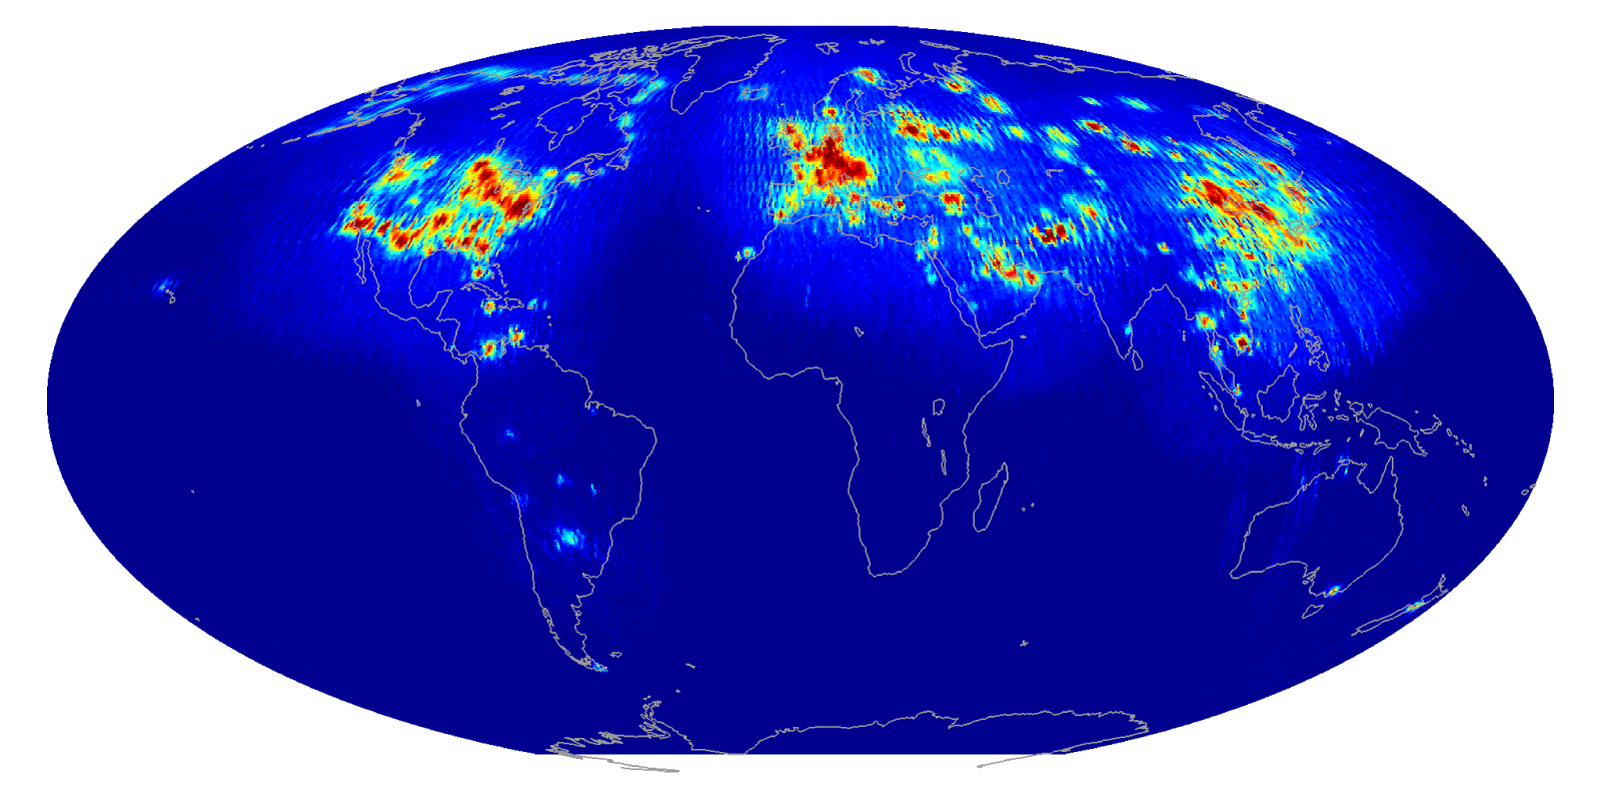 Global scatterometer RFI map